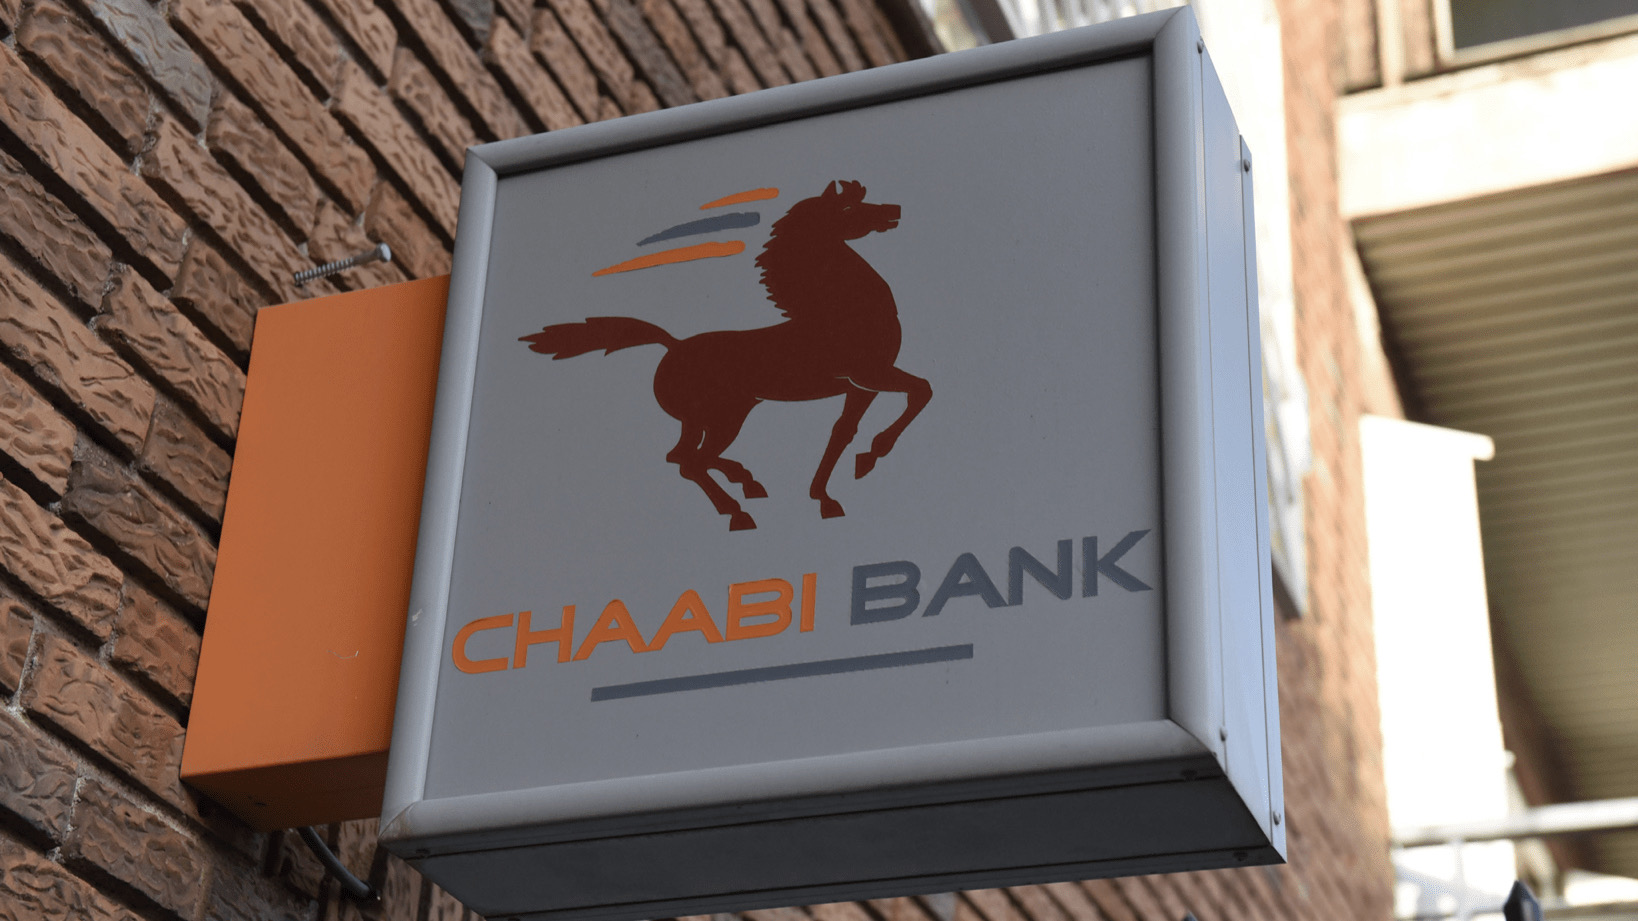 Moroccan Chaabi Bank at the heart of a French investigation targeting Muslim Brotherhood relatives